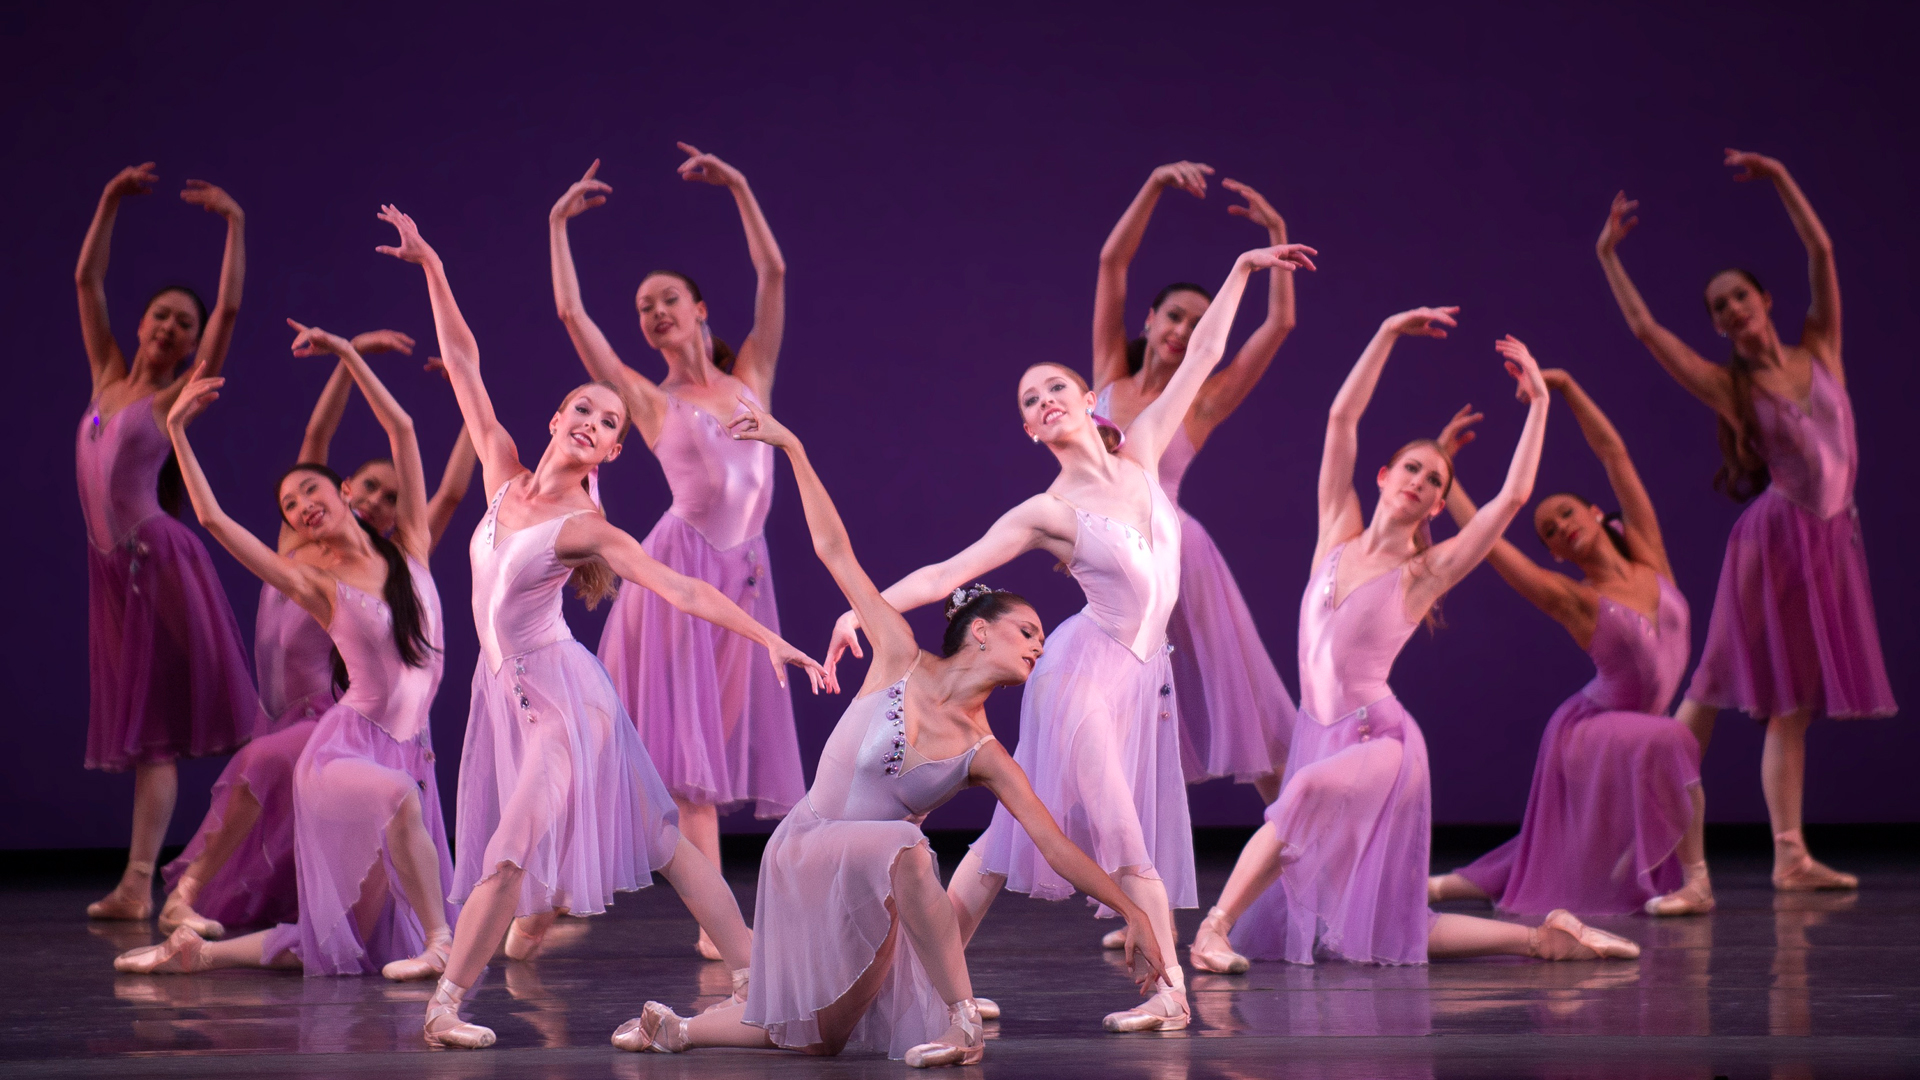 Arte Concert Opera De Paris New York City Ballet In Paris About The Two Part Nyc Ballet